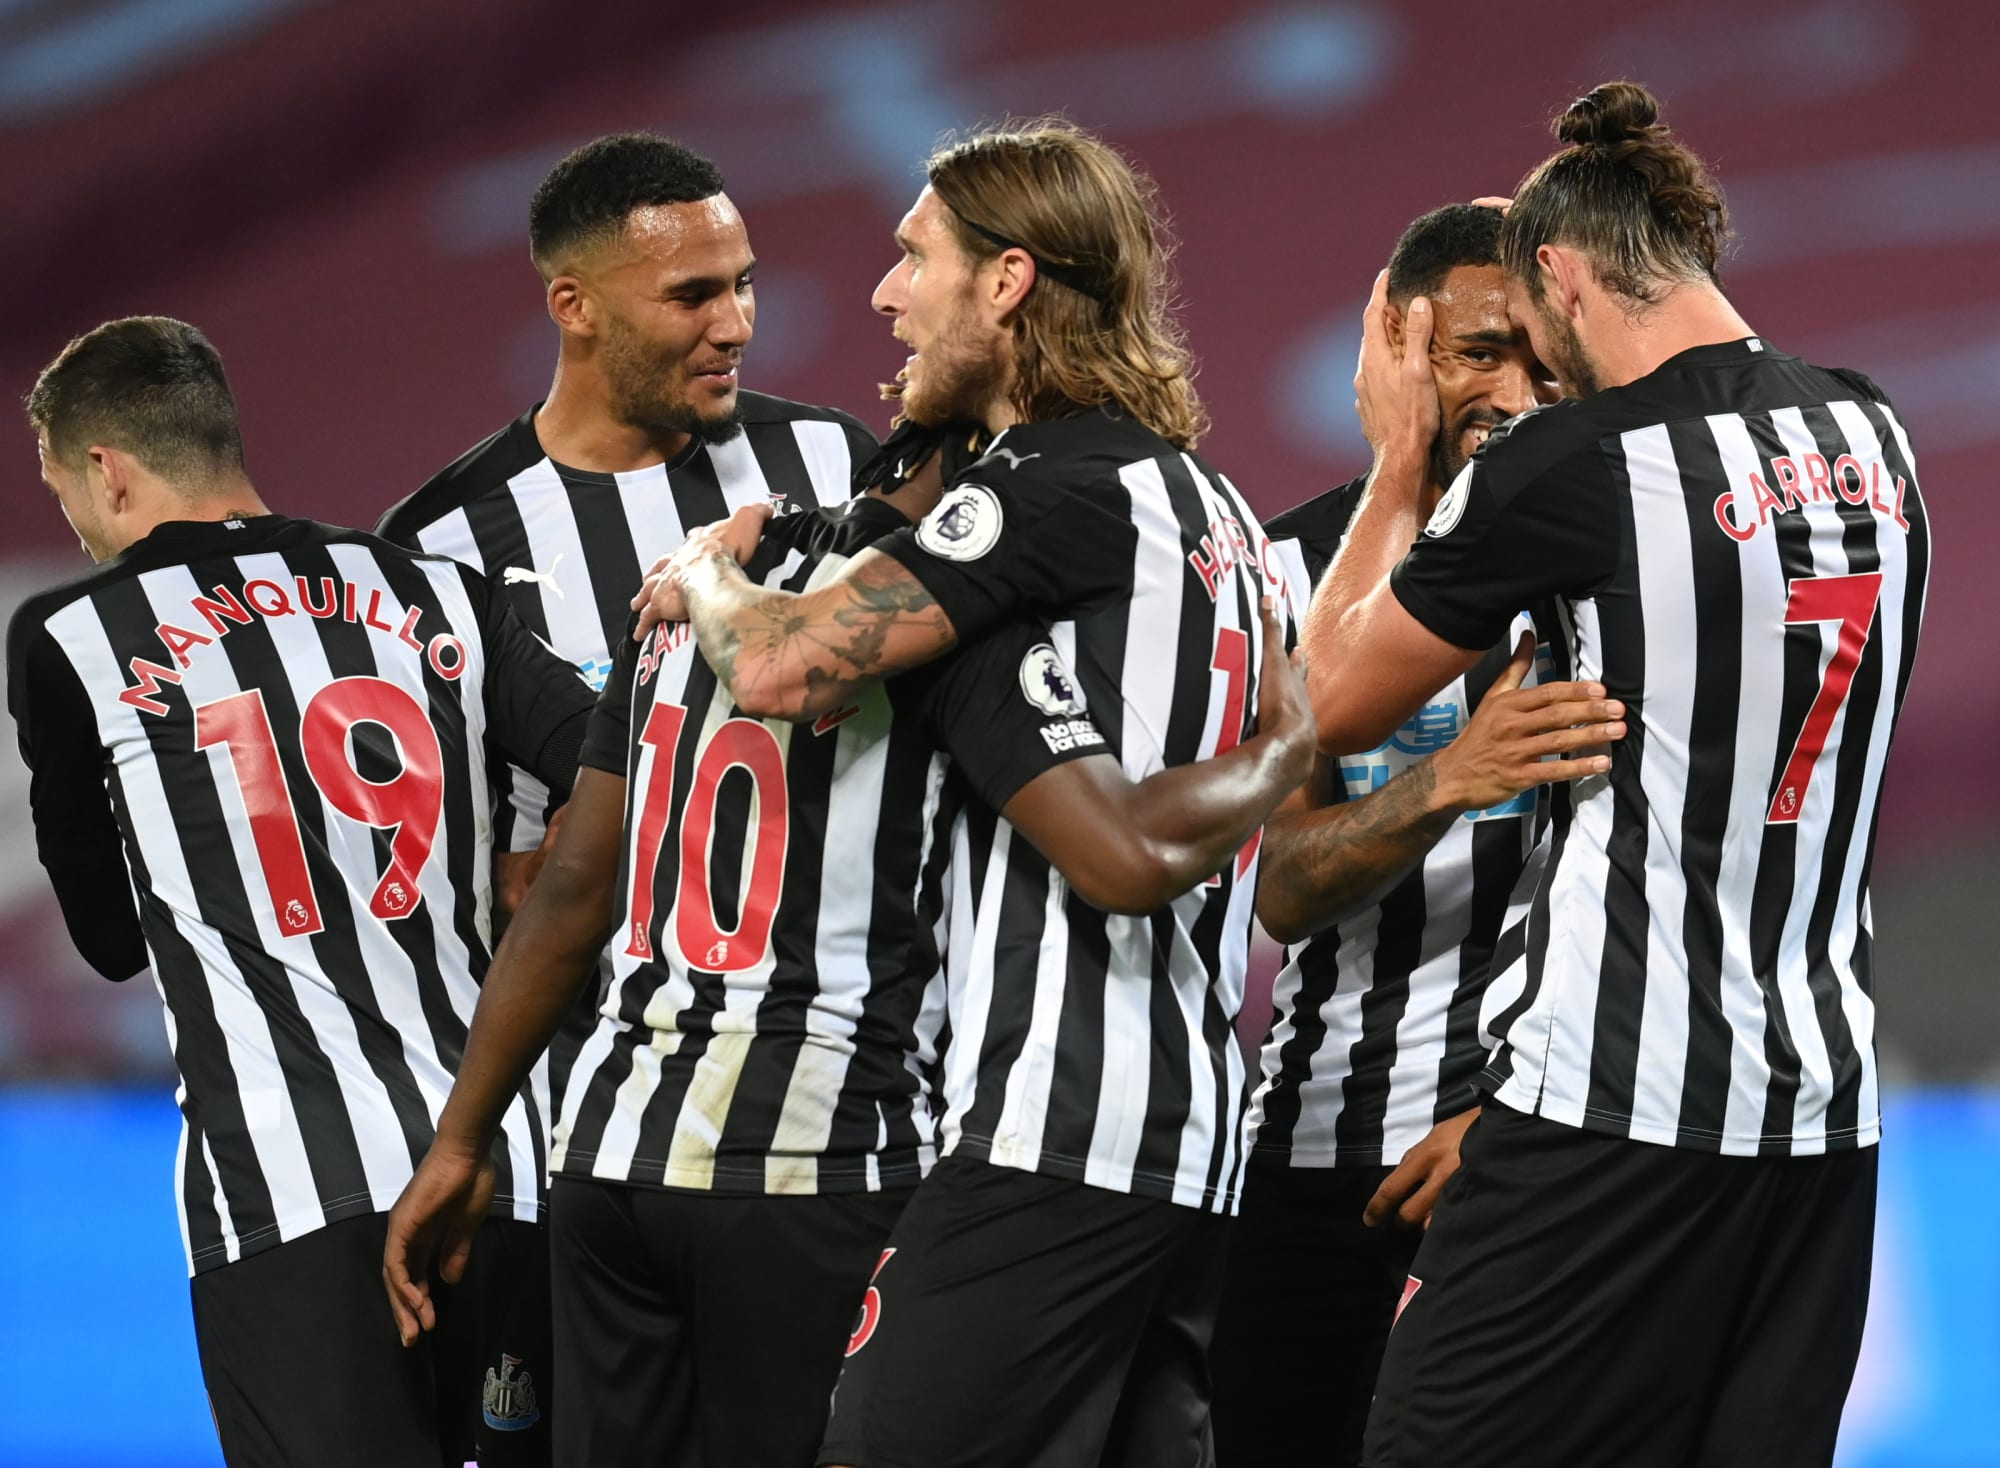 Tough road ahead: Predicting the next five clashes for Newcastle United